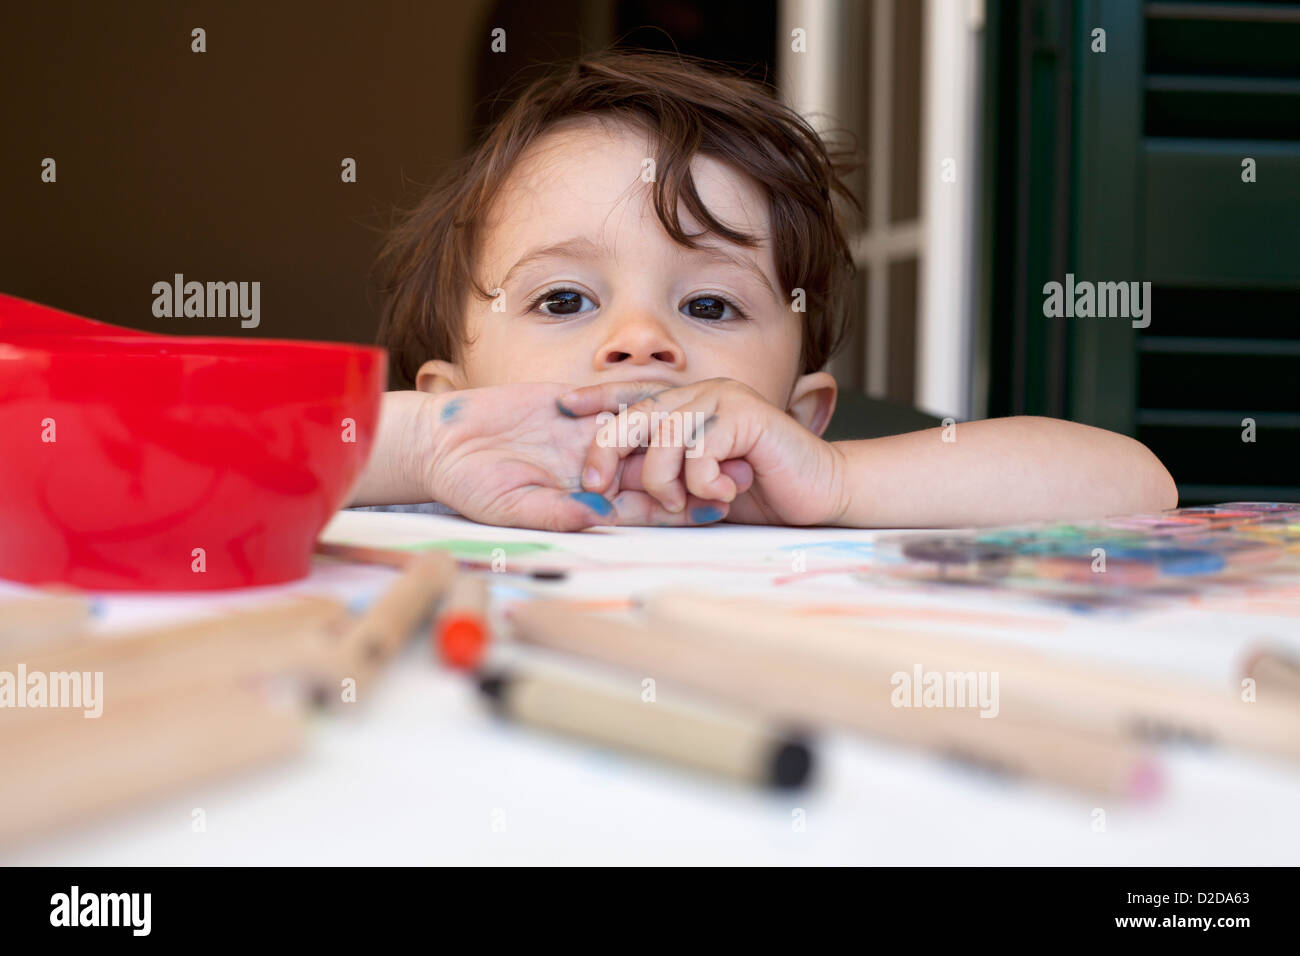 A child leaning on a table littered with colored pencils and art supplies - Stock Image